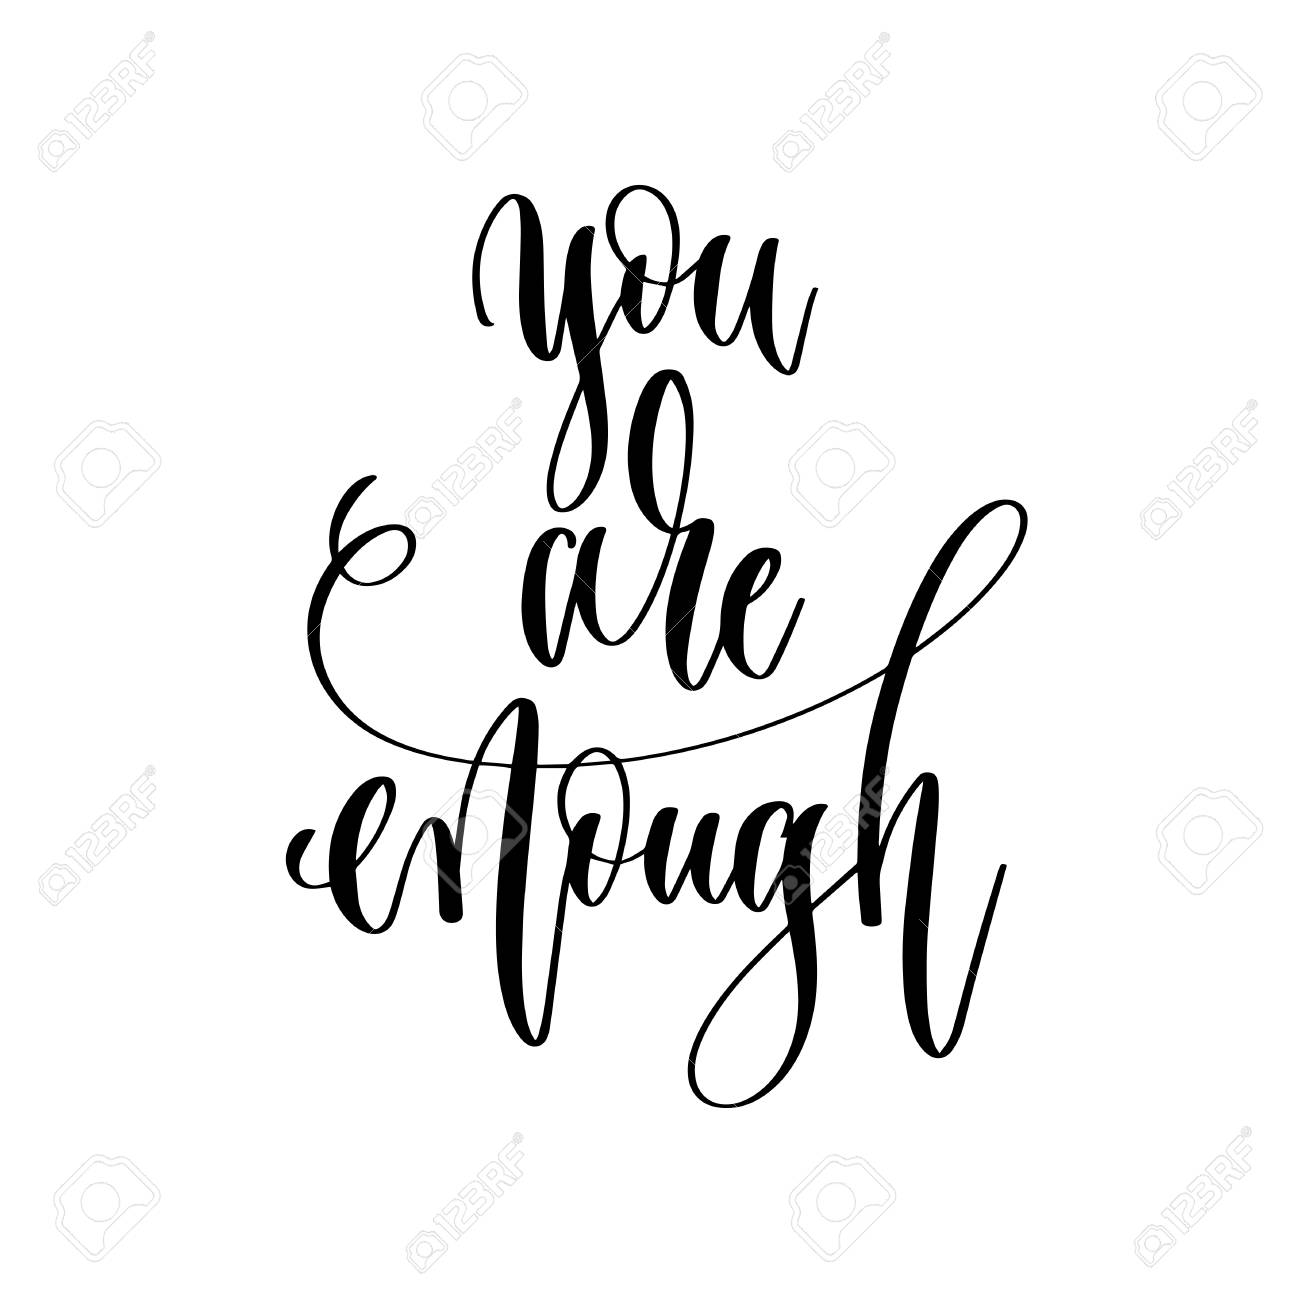 You Are Enough Hand Lettering Inscription Text Motivation